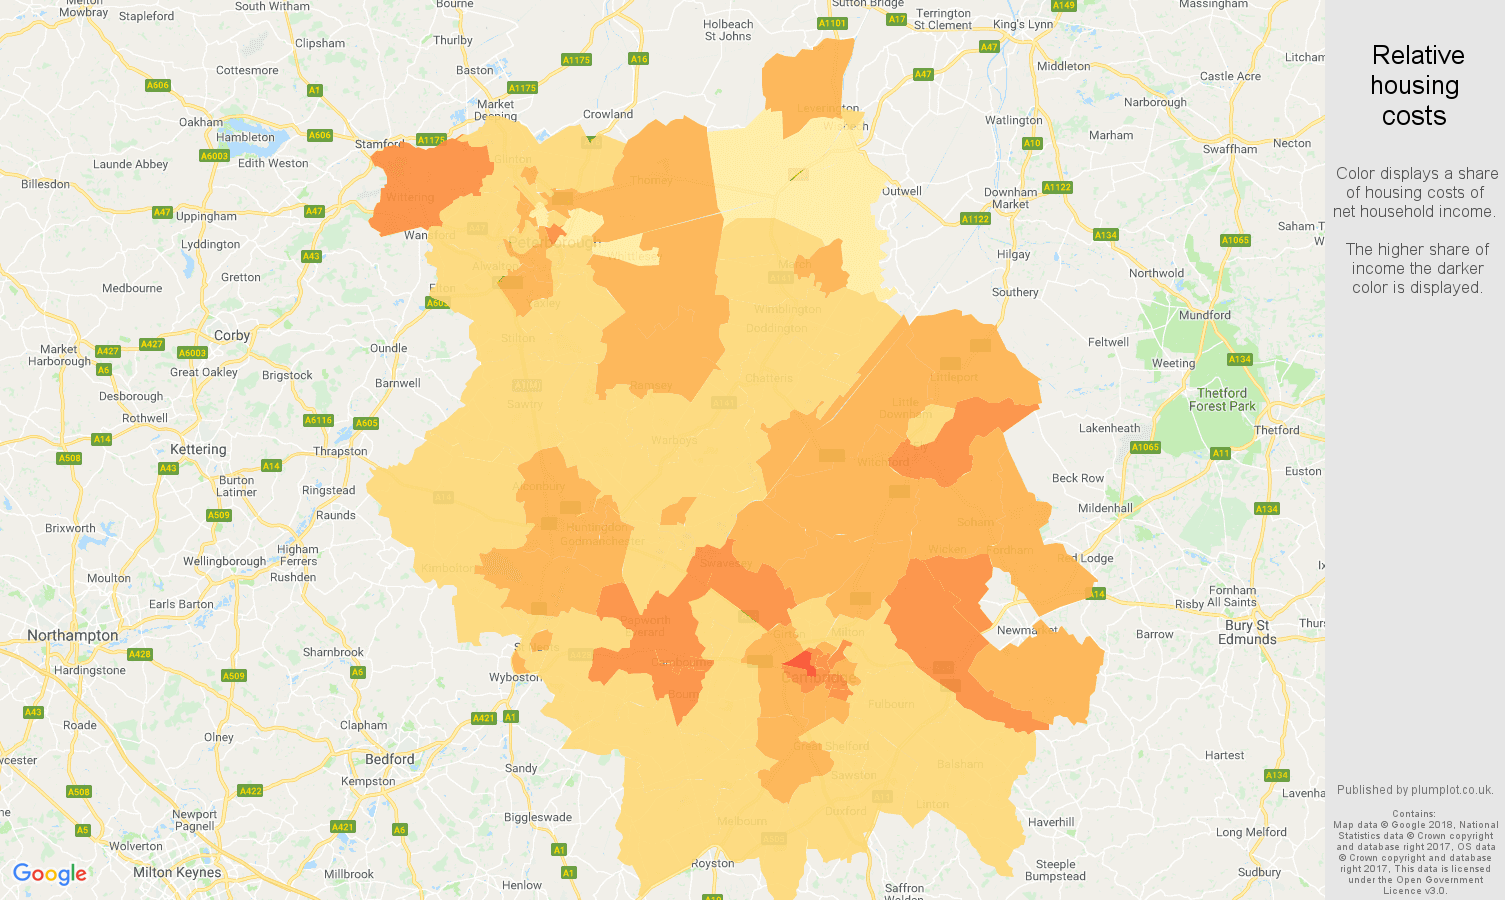 Cambridgeshire relative housing costs map